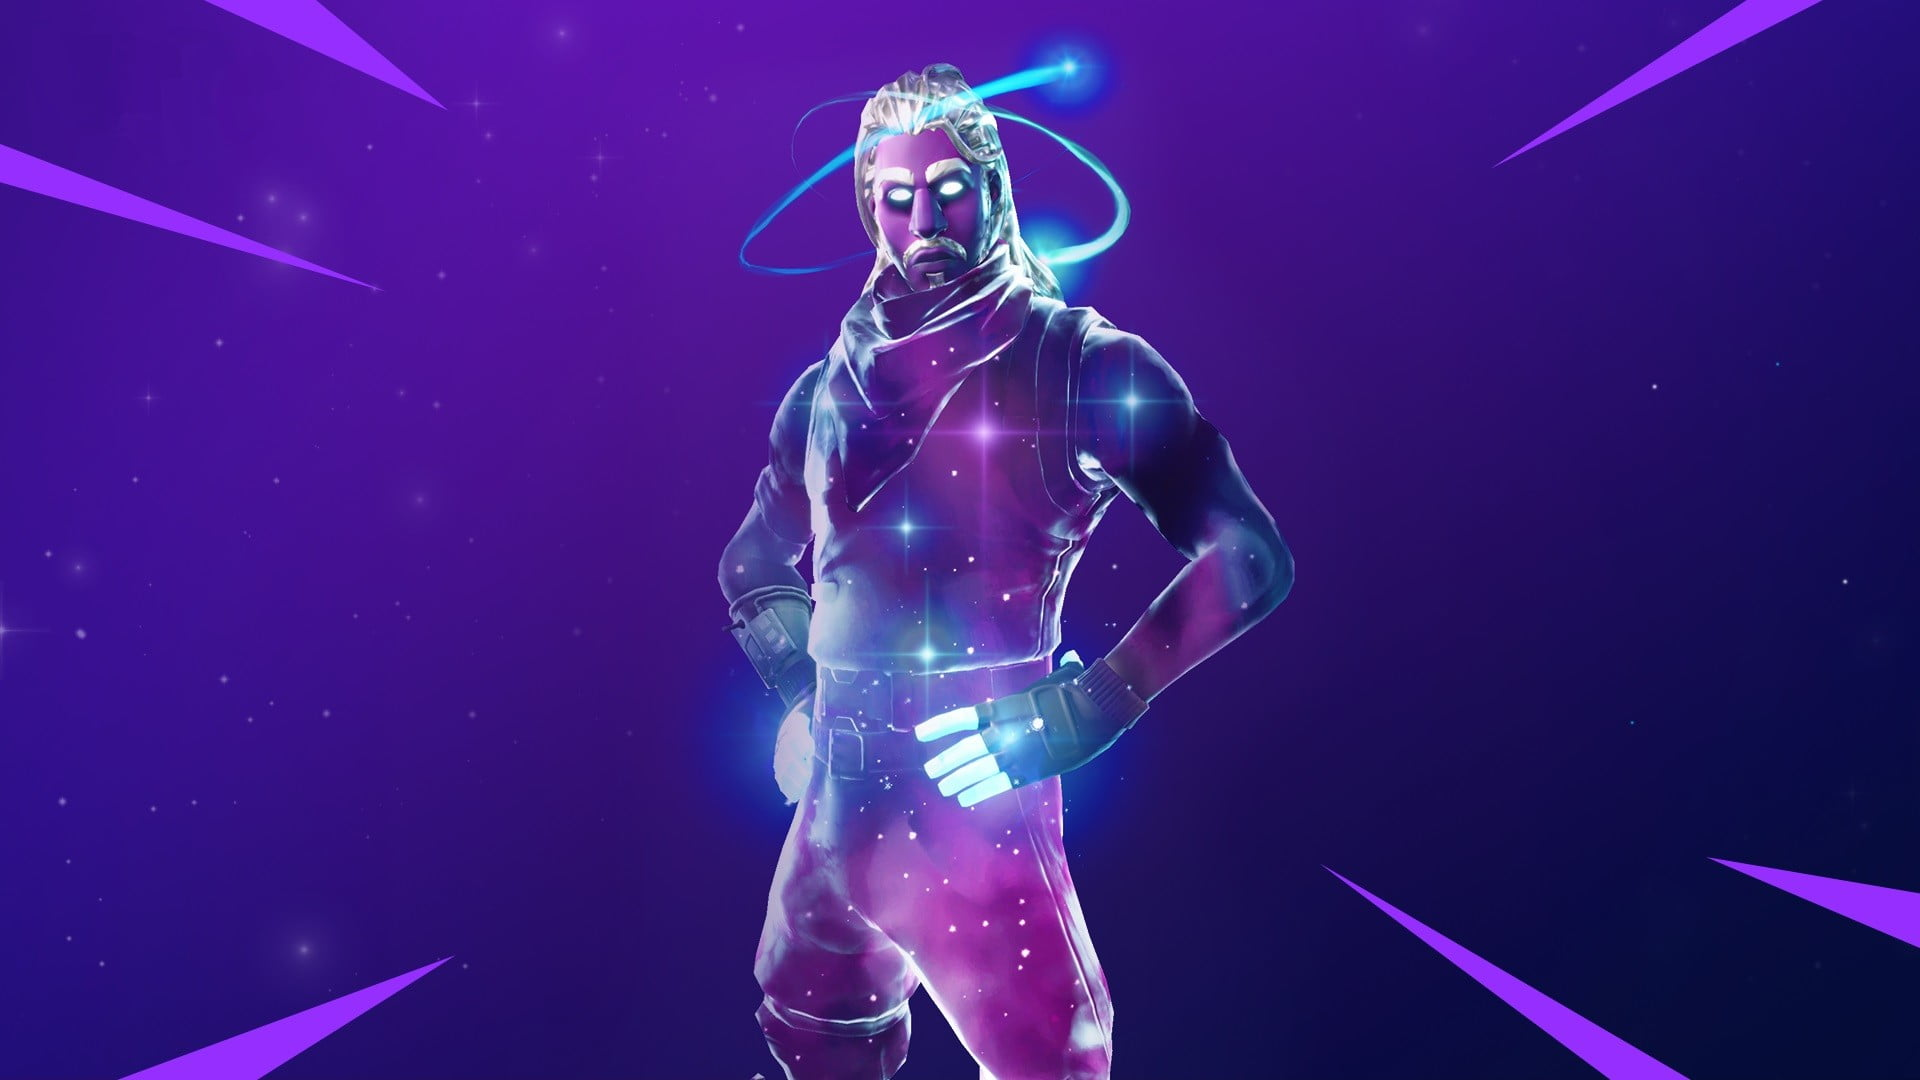 Fortnite Galaxy Skin HD Wallpaper 4279 Wallpapers and Stock 1920x1080